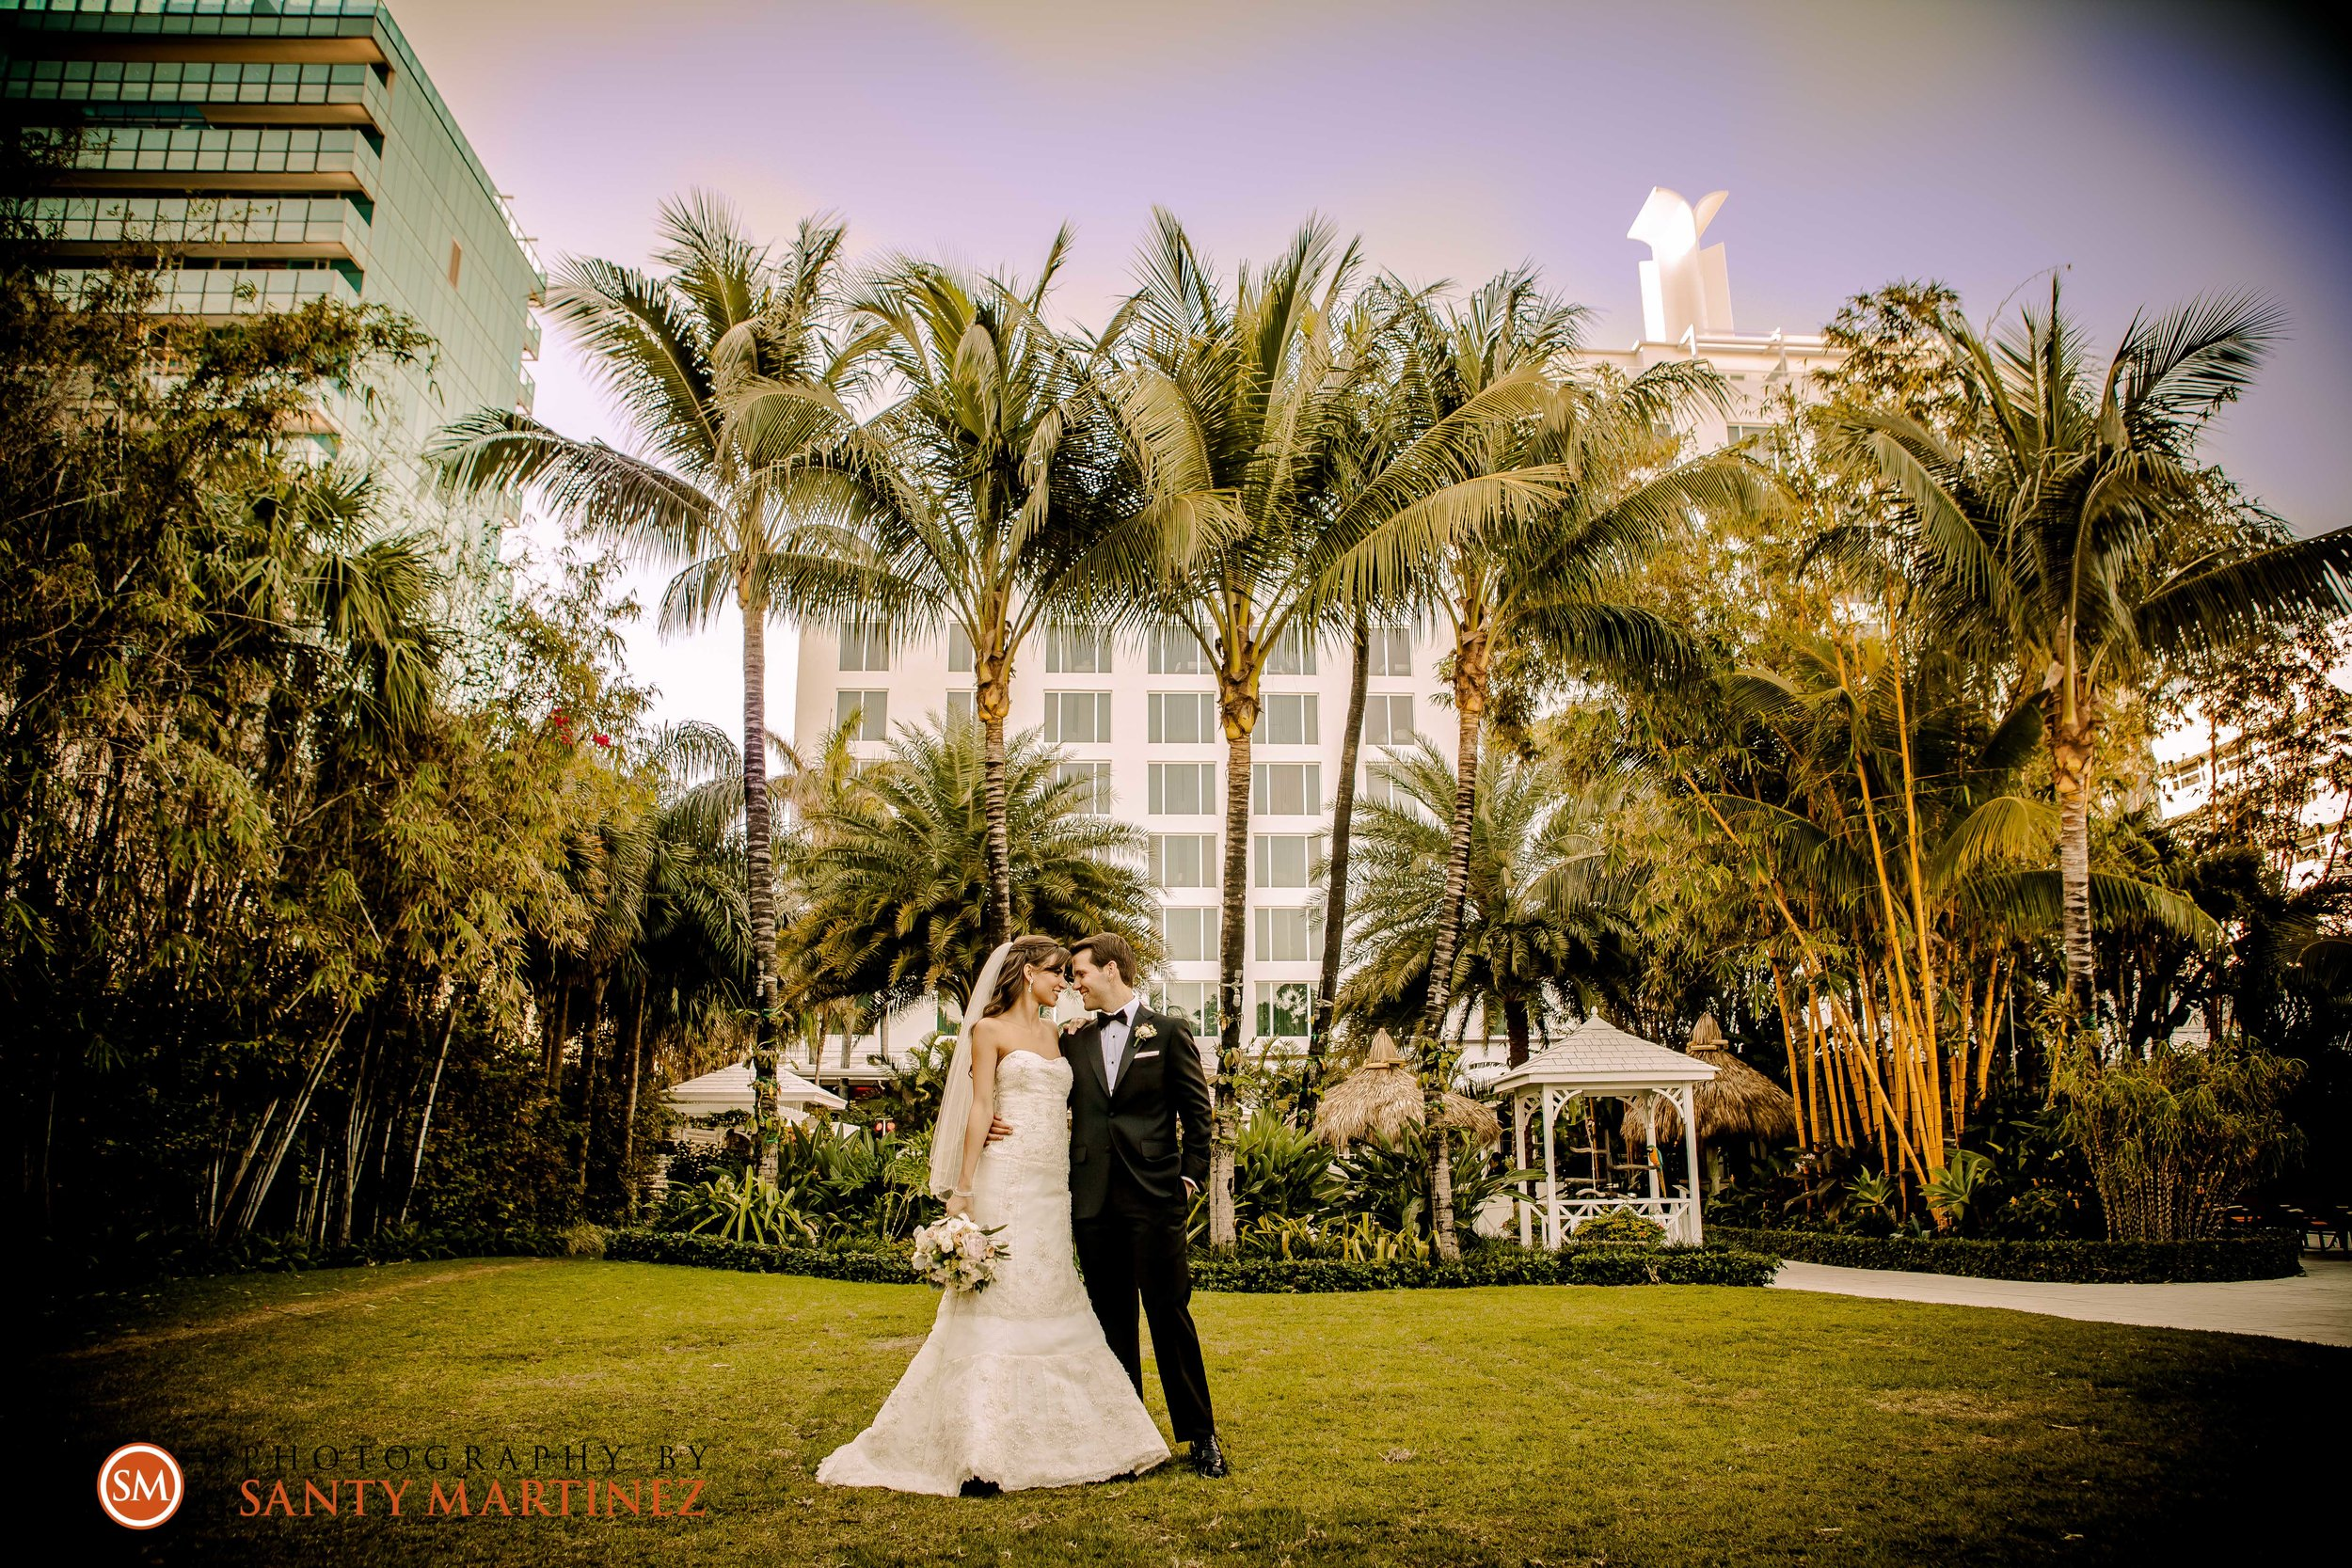 Miami Wedding Photographer - Santy Martinez -17-1.jpg